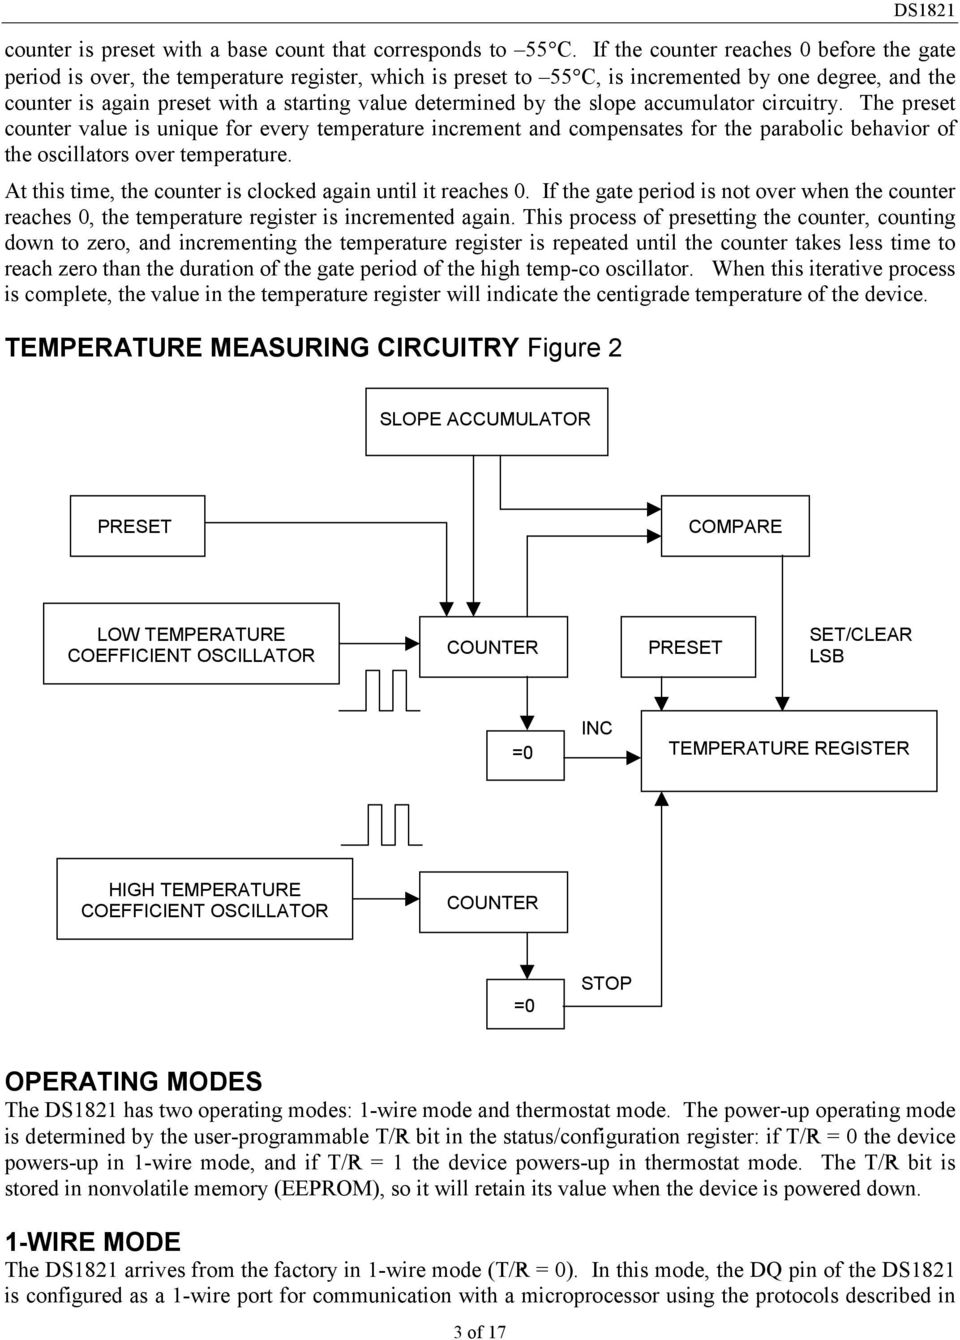 determined by the slope accumulator circuitry. The preset counter value is unique for every temperature increment and compensates for the parabolic behavior of the oscillators over temperature.